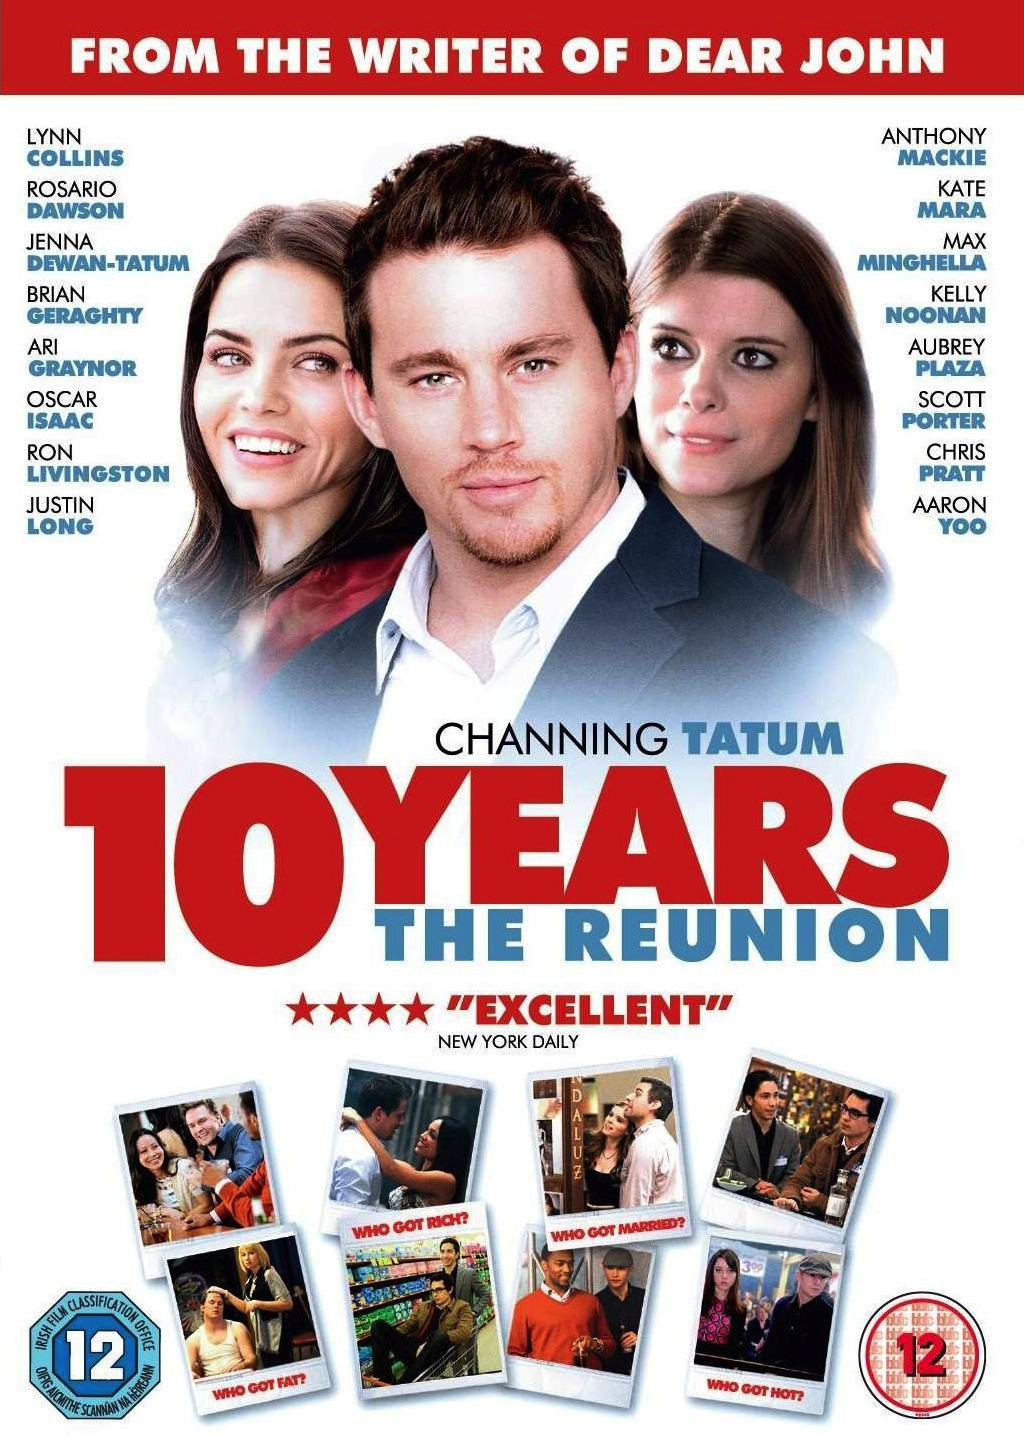 channing tatum's '10 years' releases on dvd in the uk - channing